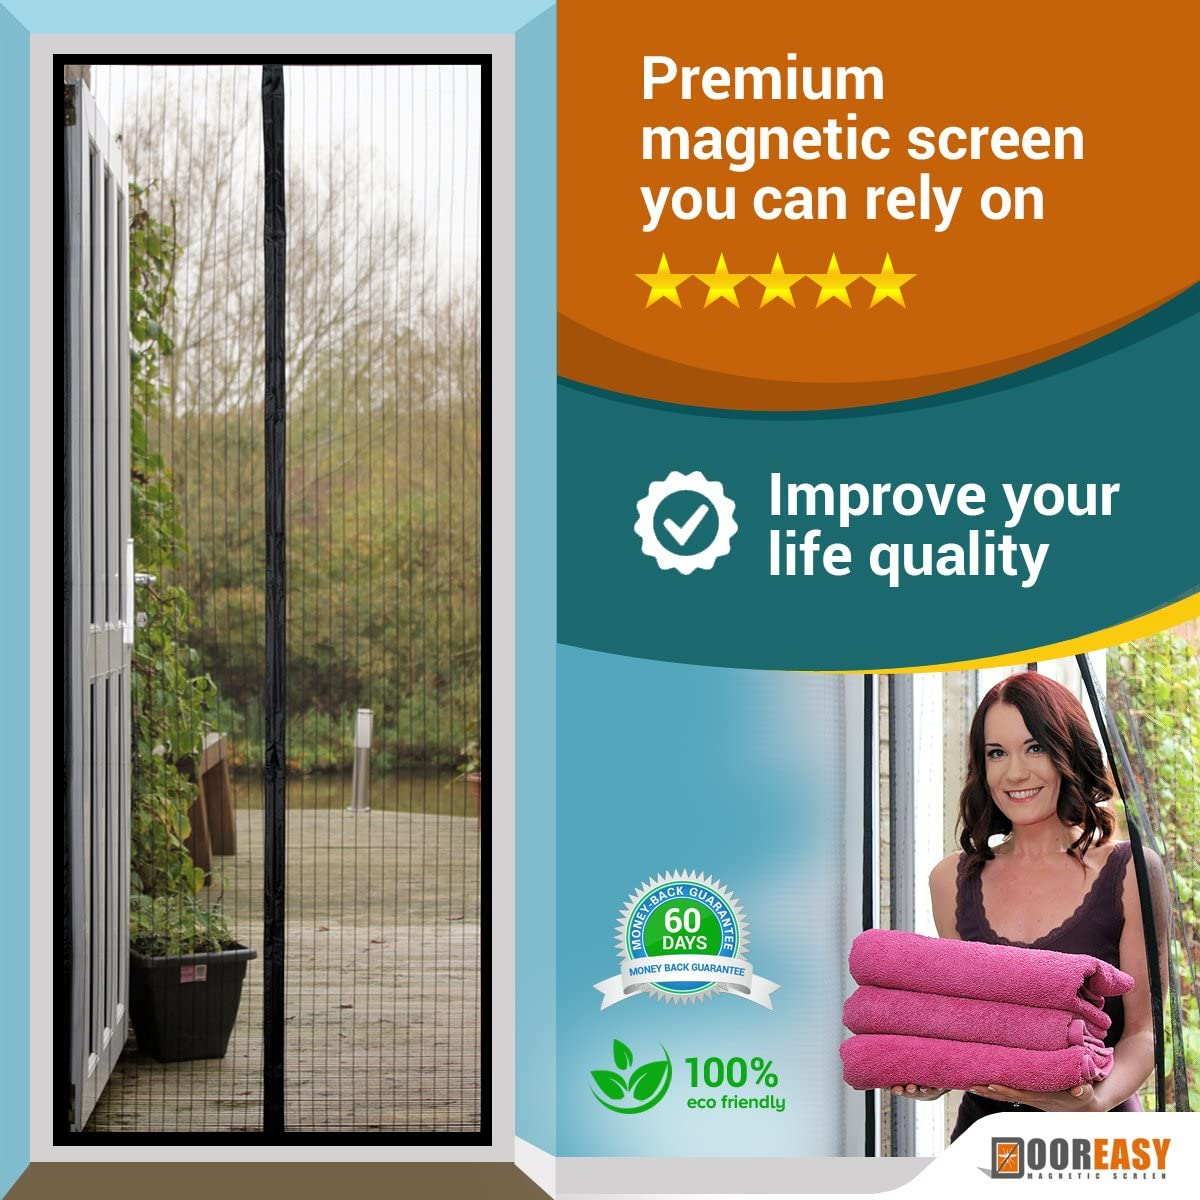 DOOREASY Magnetic Screen Wide Range Sizes Screen Door, Full Frame Loop Sewn Polyester Mesh, Add-on Magnets and Weight Bars(Fits Doors up to 30